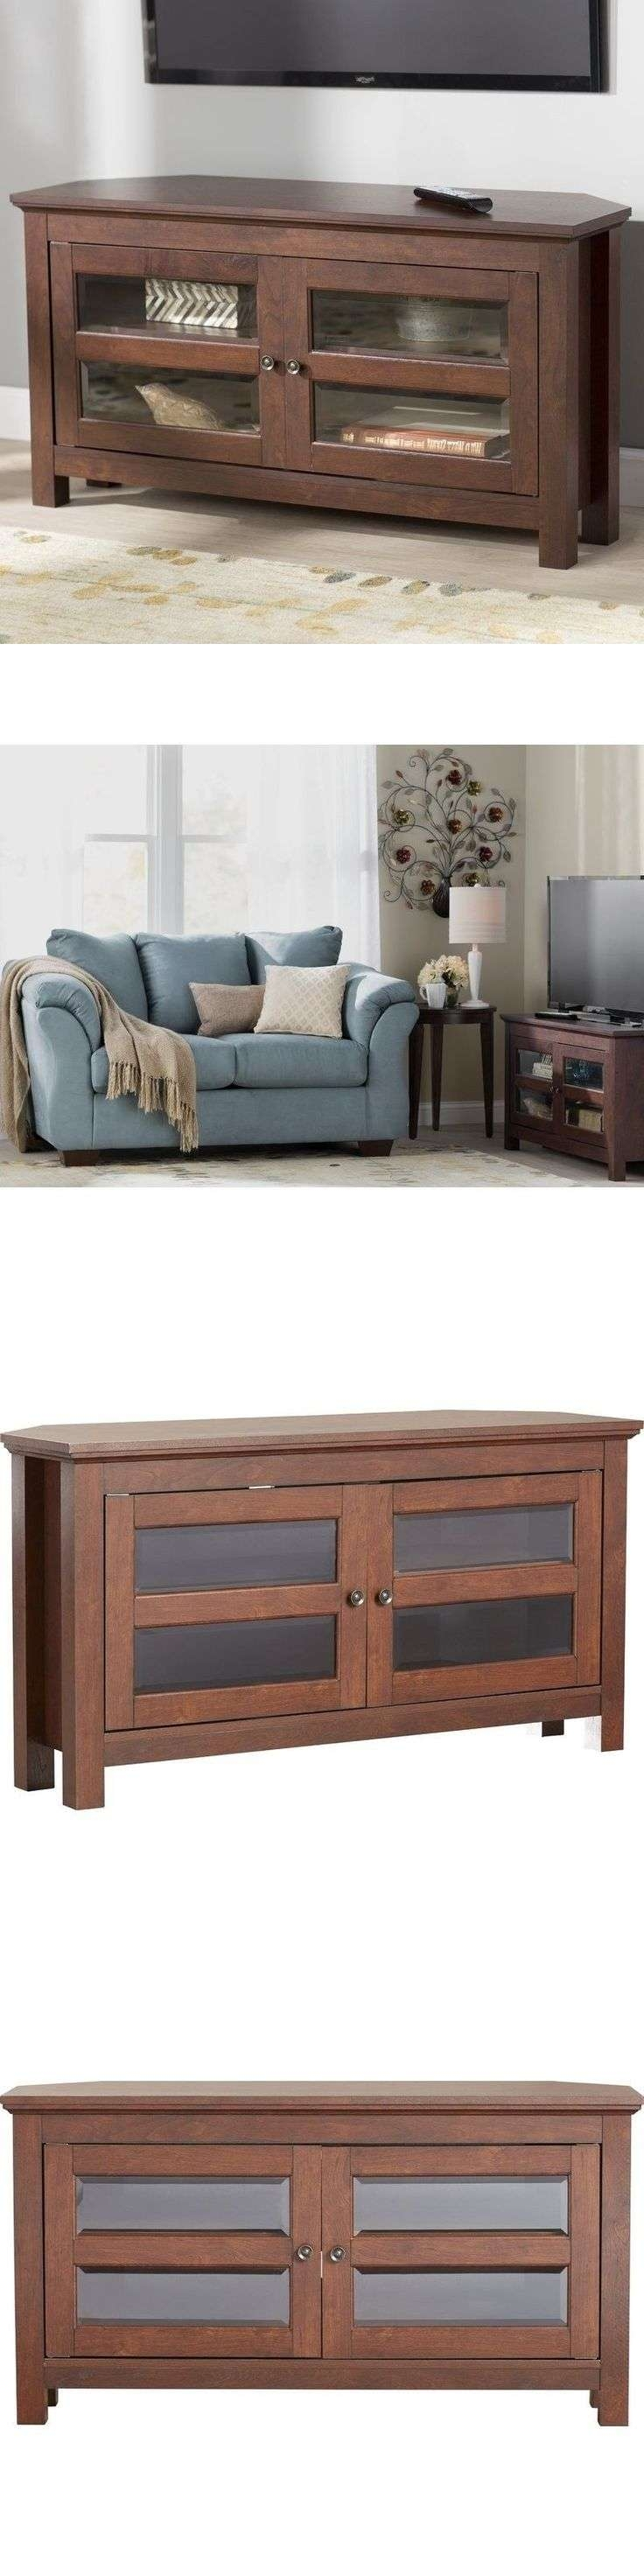 Tv : Cordoba Tv Stands Attractive Cordoba Tv Stand With Mount With Cordoba Tv Stands (View 14 of 15)